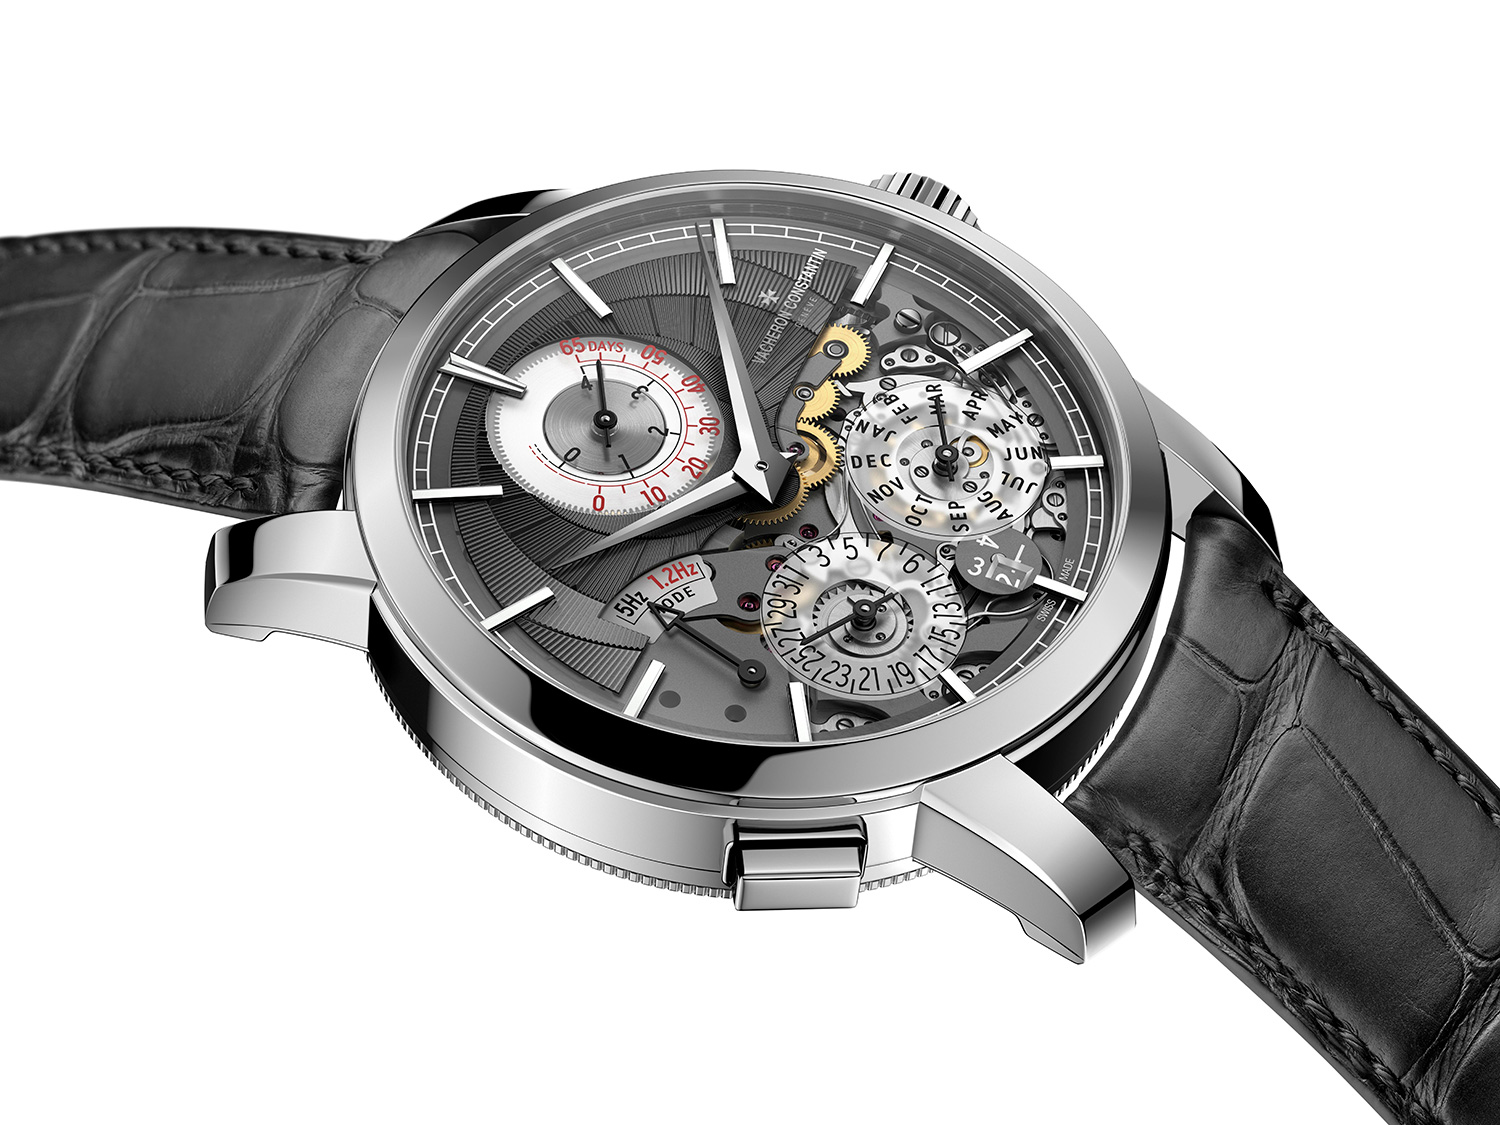 Vacheron Constantin Traditionnelle Twin Beat perpetual calendarVacheron Constantin Traditionnelle Twin Beat perpetual calendar